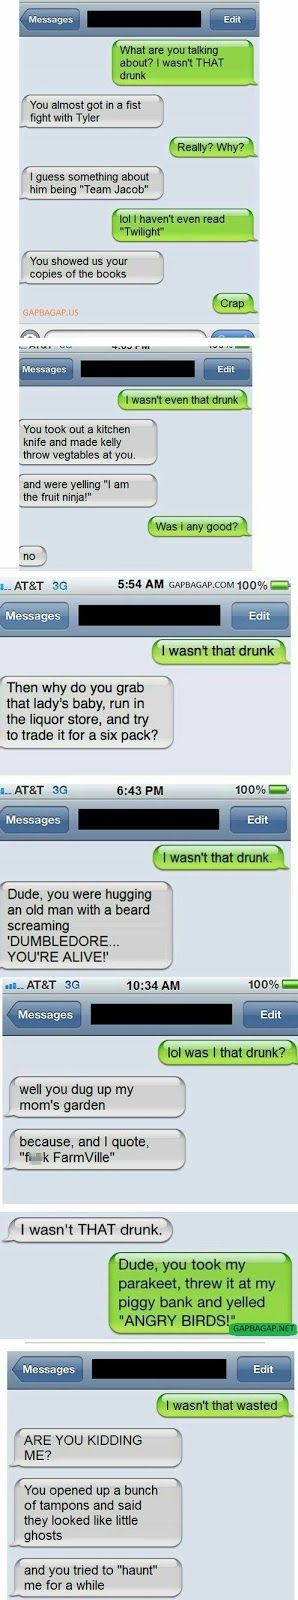 Top 7 Hilarious Text Messages